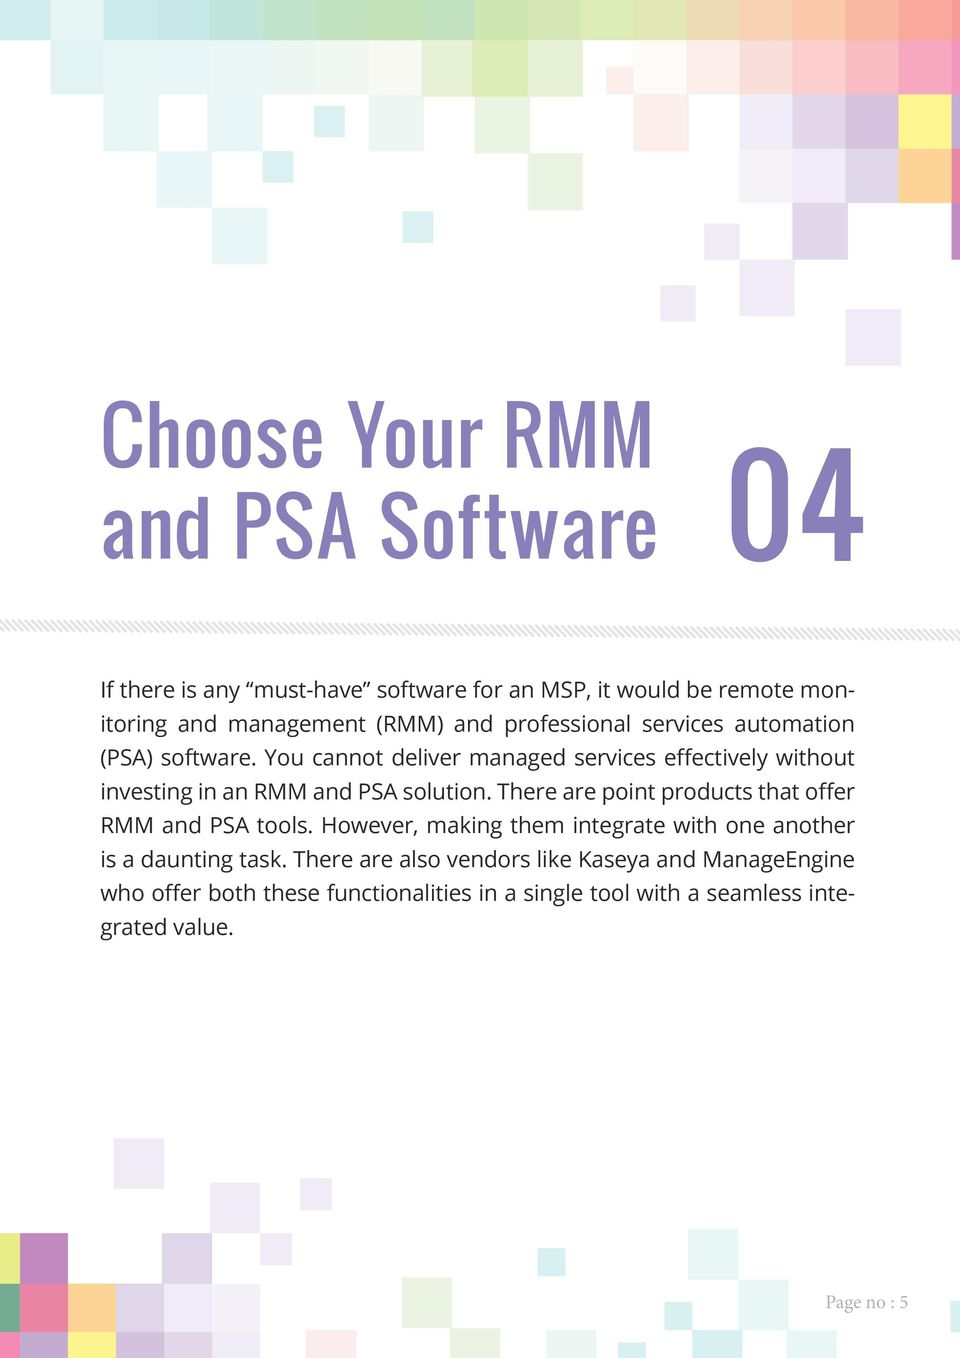 You cannot deliver managed services effectively without investing in an RMM and PSA solution.